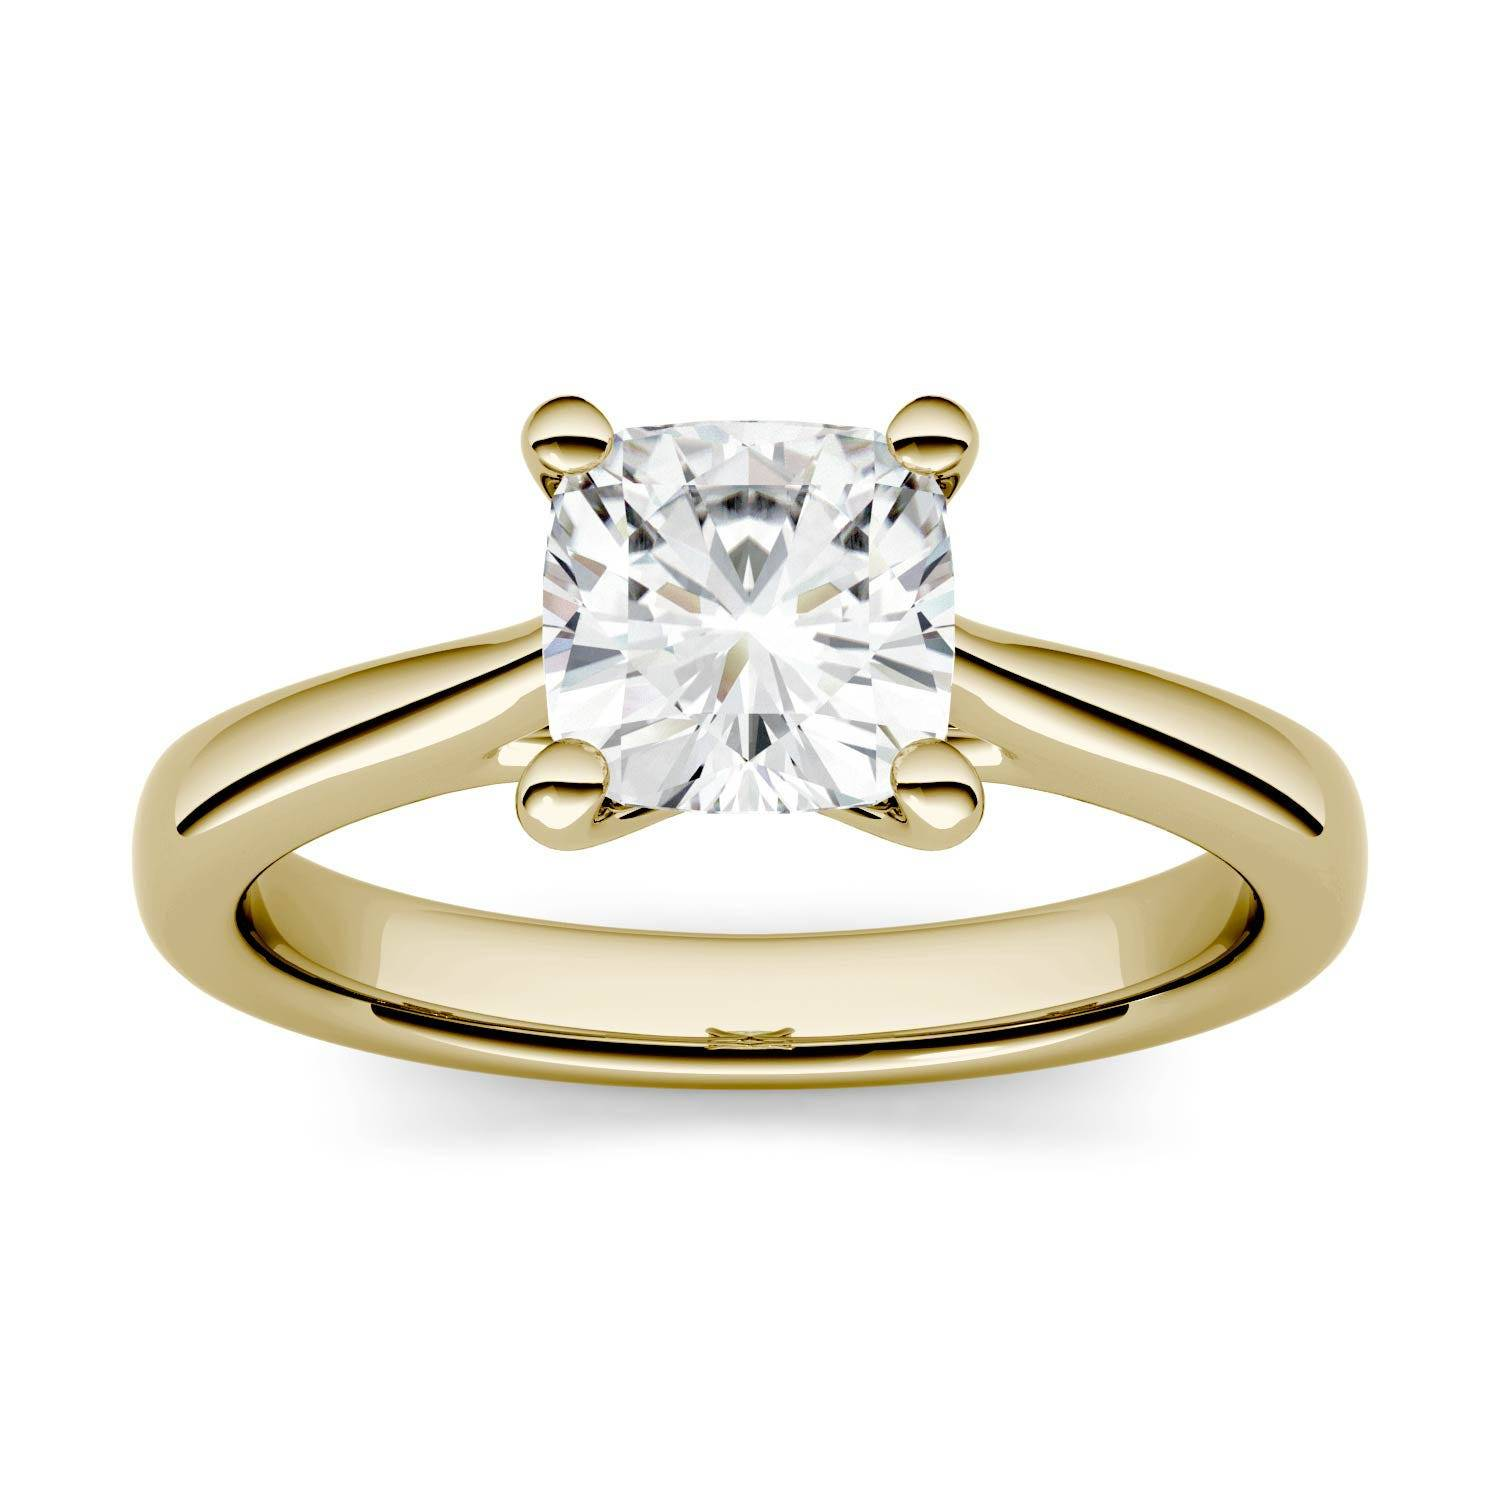 Charles & Colvard Solitaire Engagement Ring in 14K Yellow Gold, Size: 5, 1.10CTW Cushion Forever One - Colorless Moissanite Charles & Colvard  - Yellow Gold - Size: 5